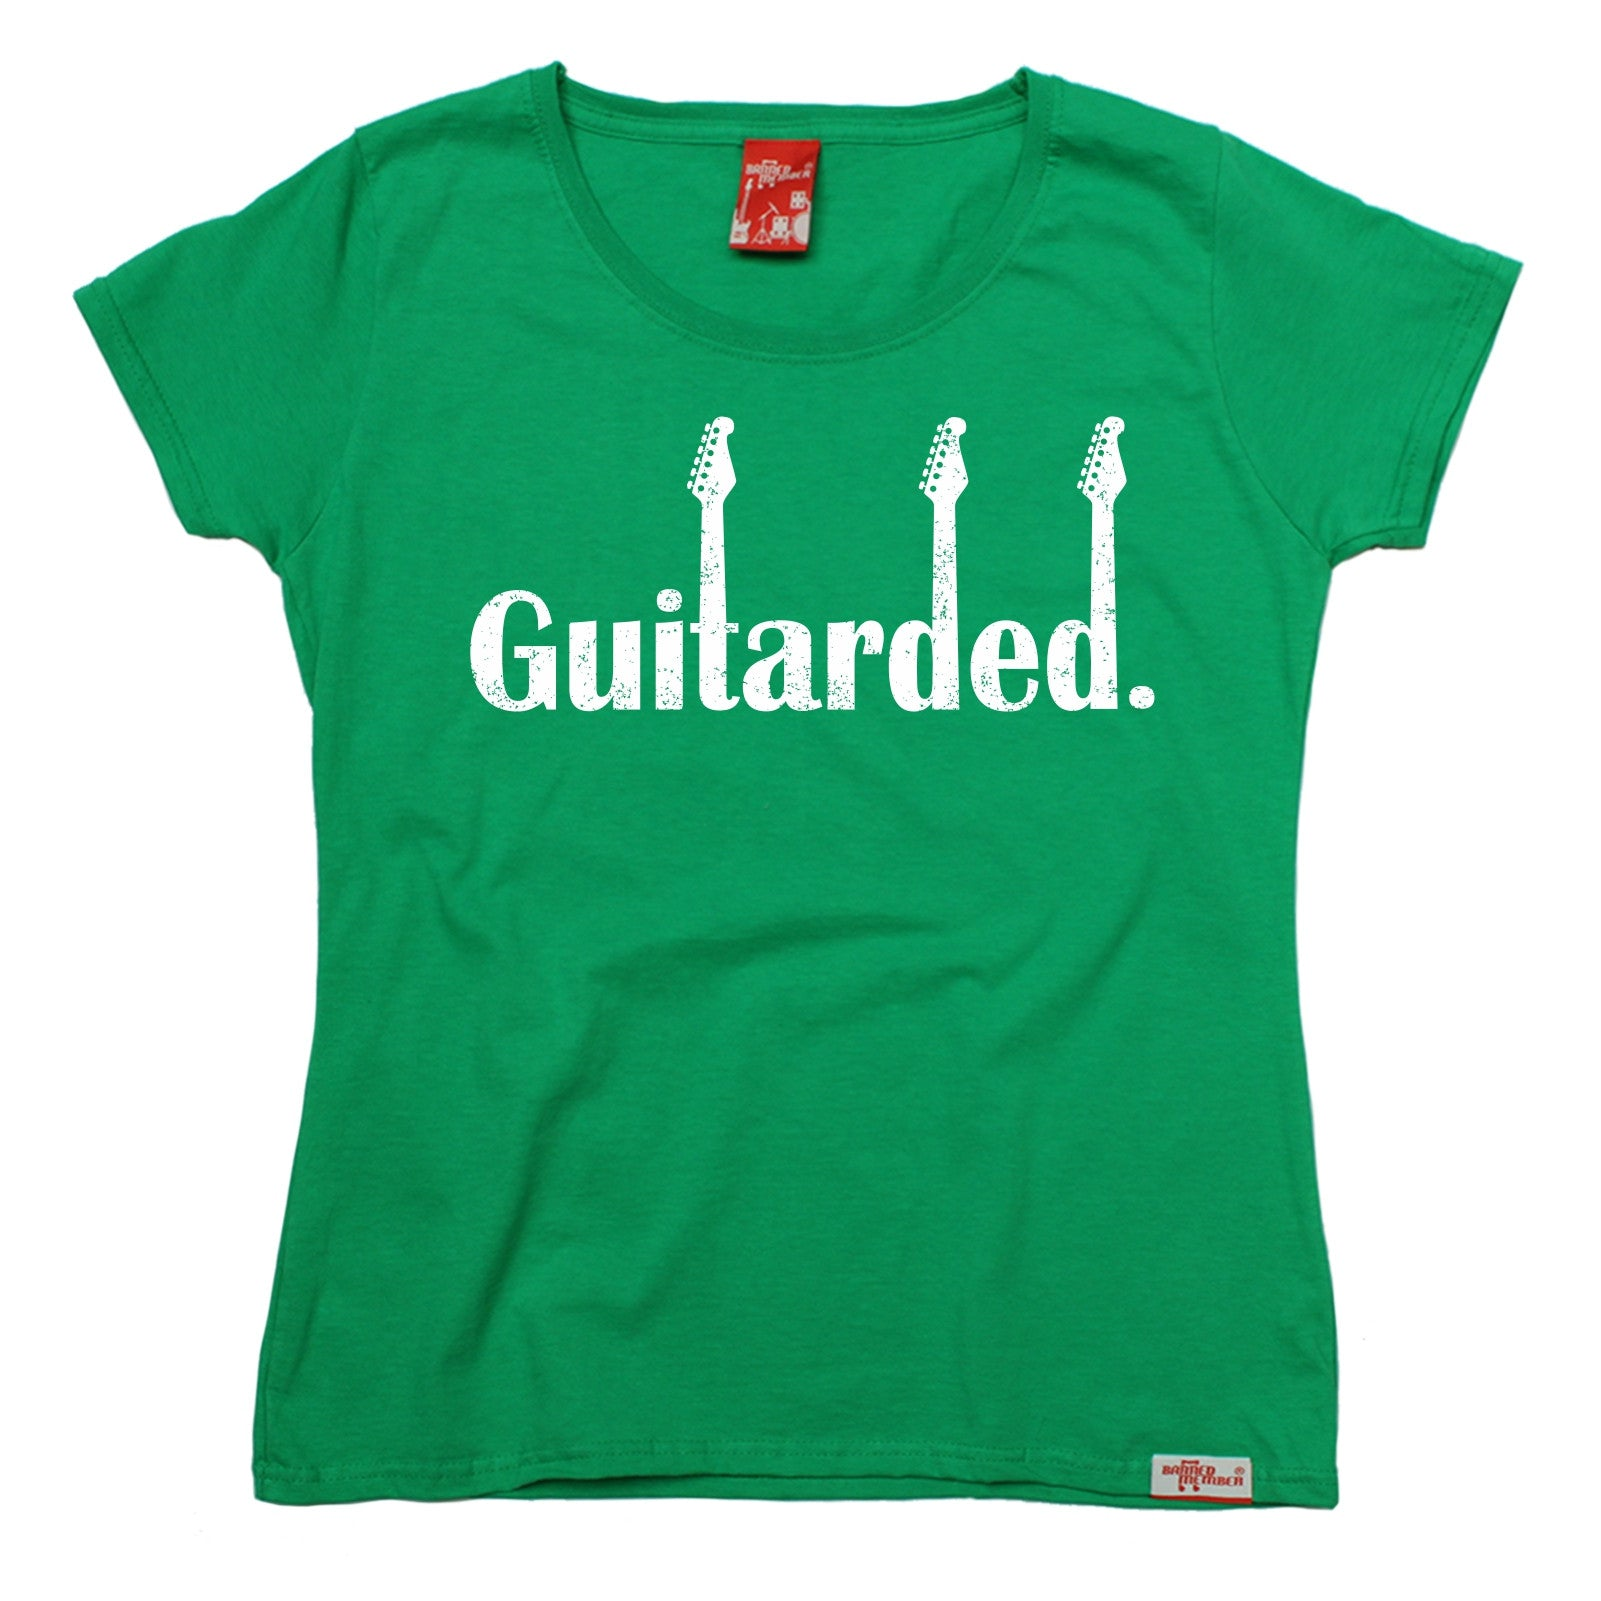 Guitarded-WOMENS-T-SHIRT-Electric-Guitar-Band-Clothing-Funny-birthday-gift